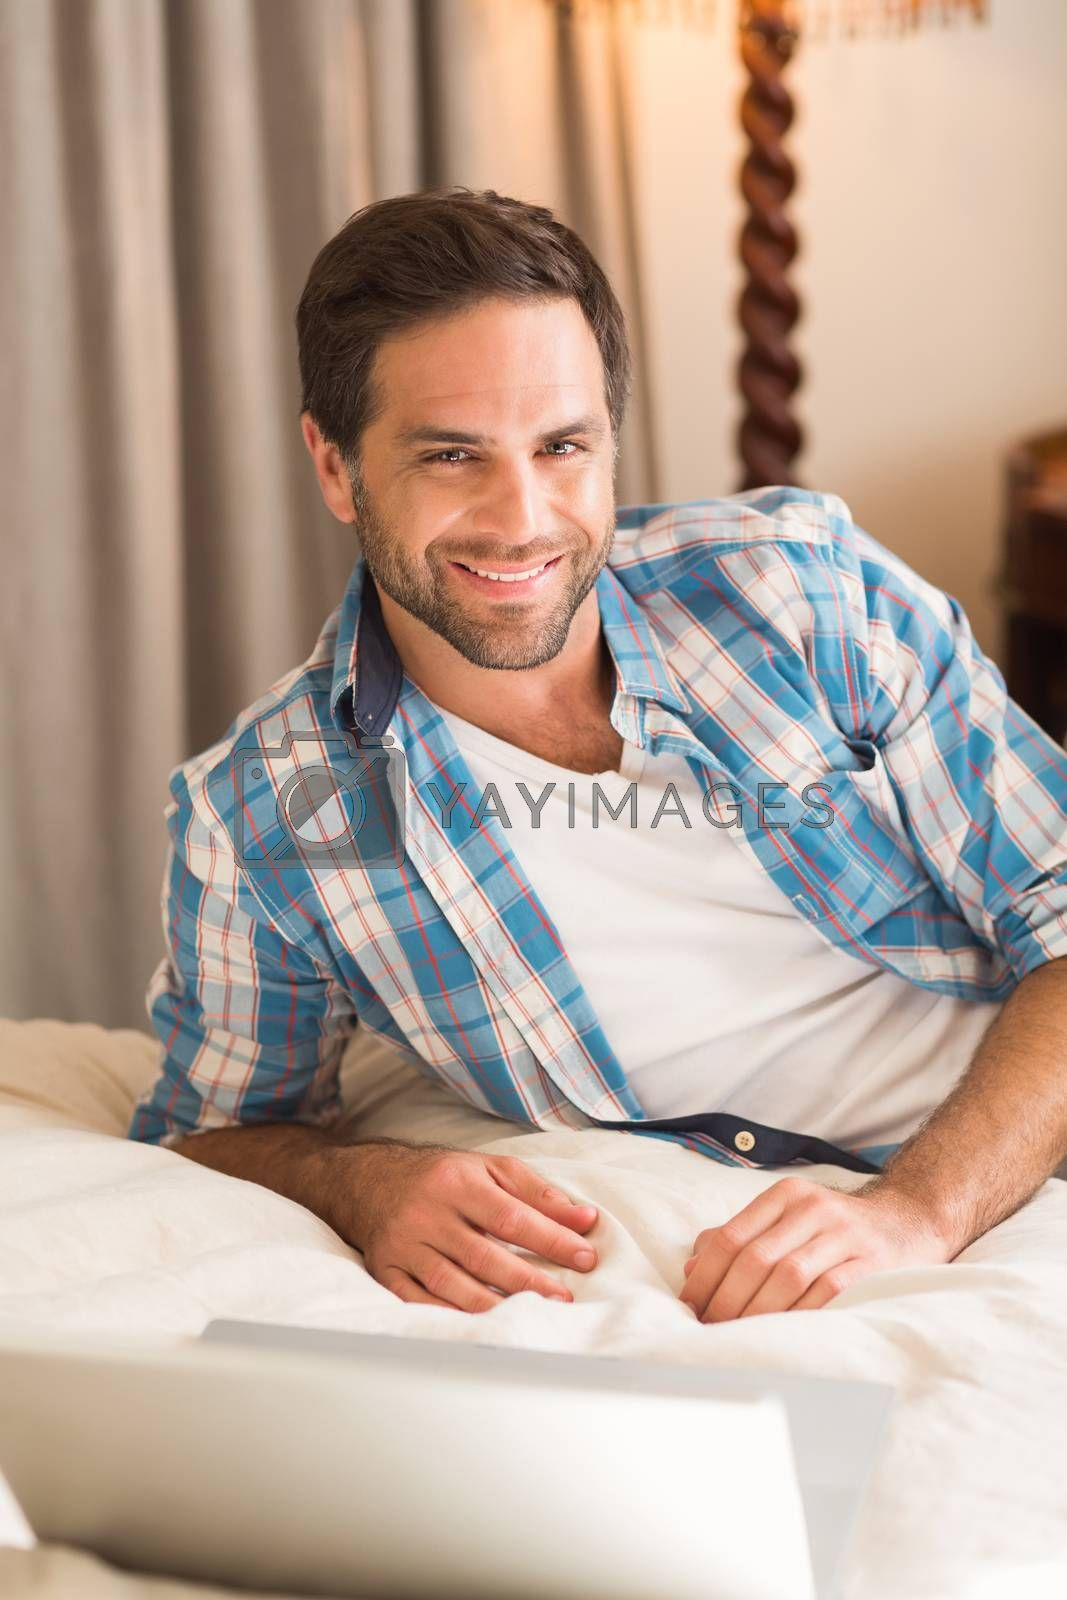 Handsome man relaxing on his bed with laptop by Wavebreakmedia